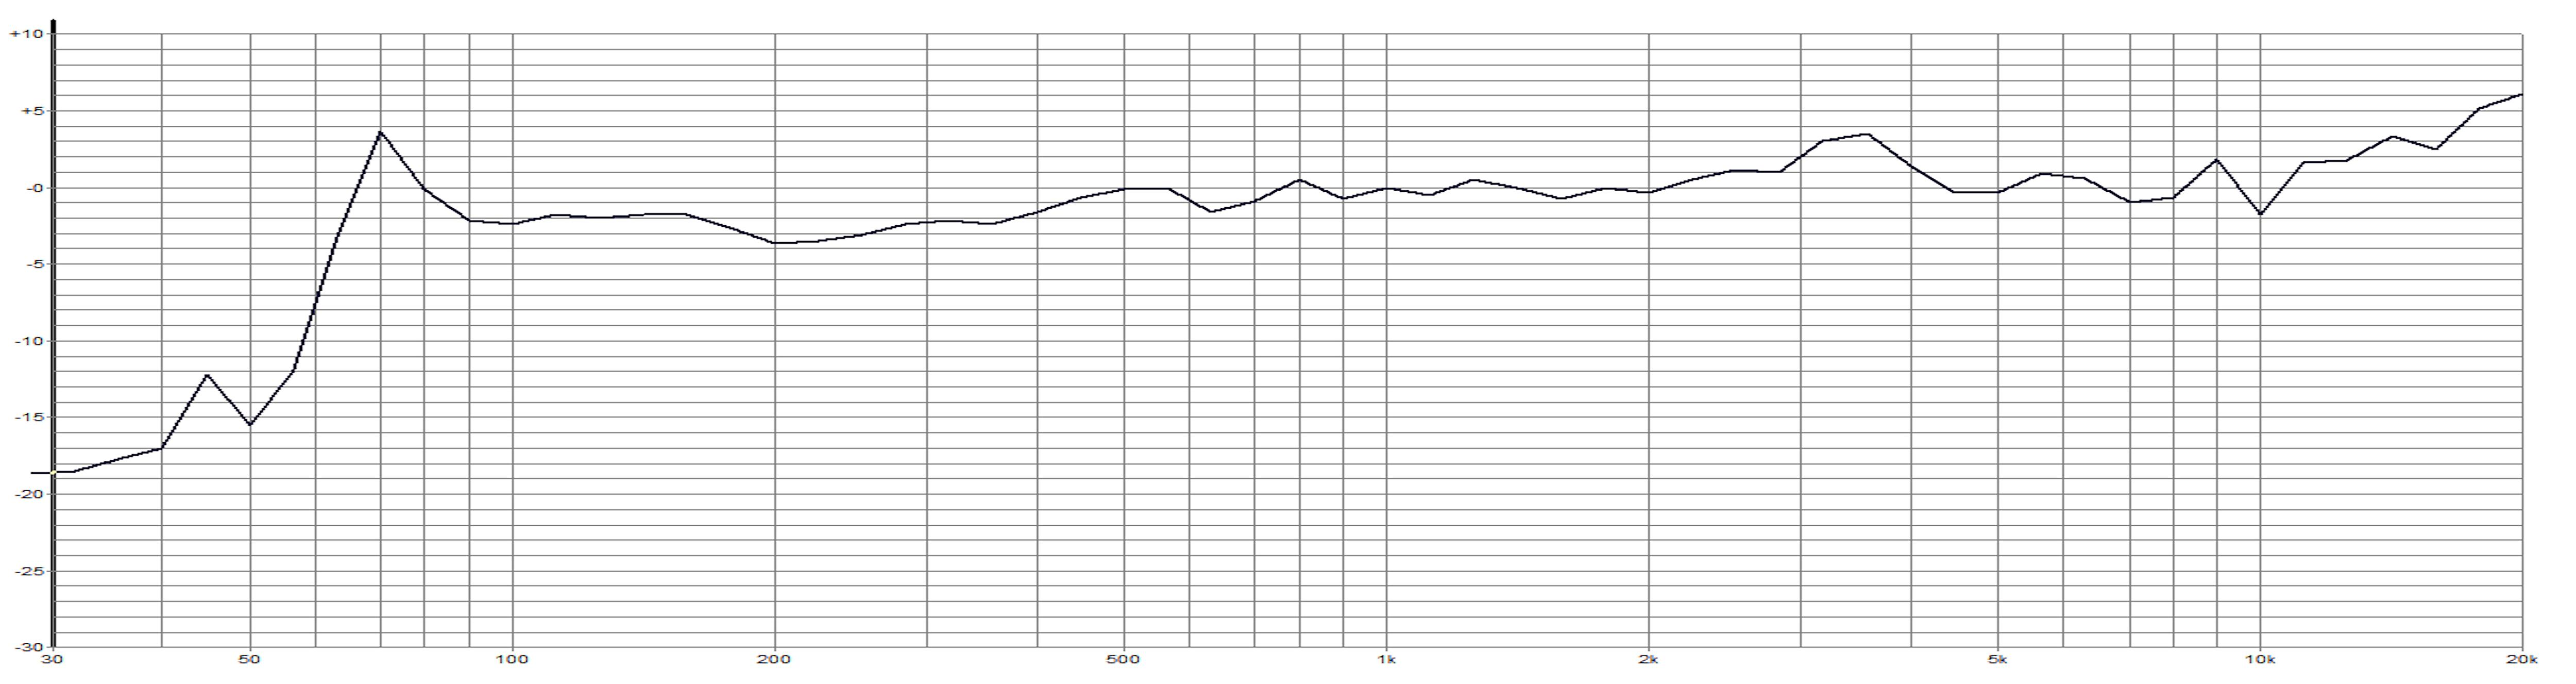 Clockaudio Products Suspended Ccrm 4000 C 303w Rf Wiring Diagram Polar Pattern Frequency Response